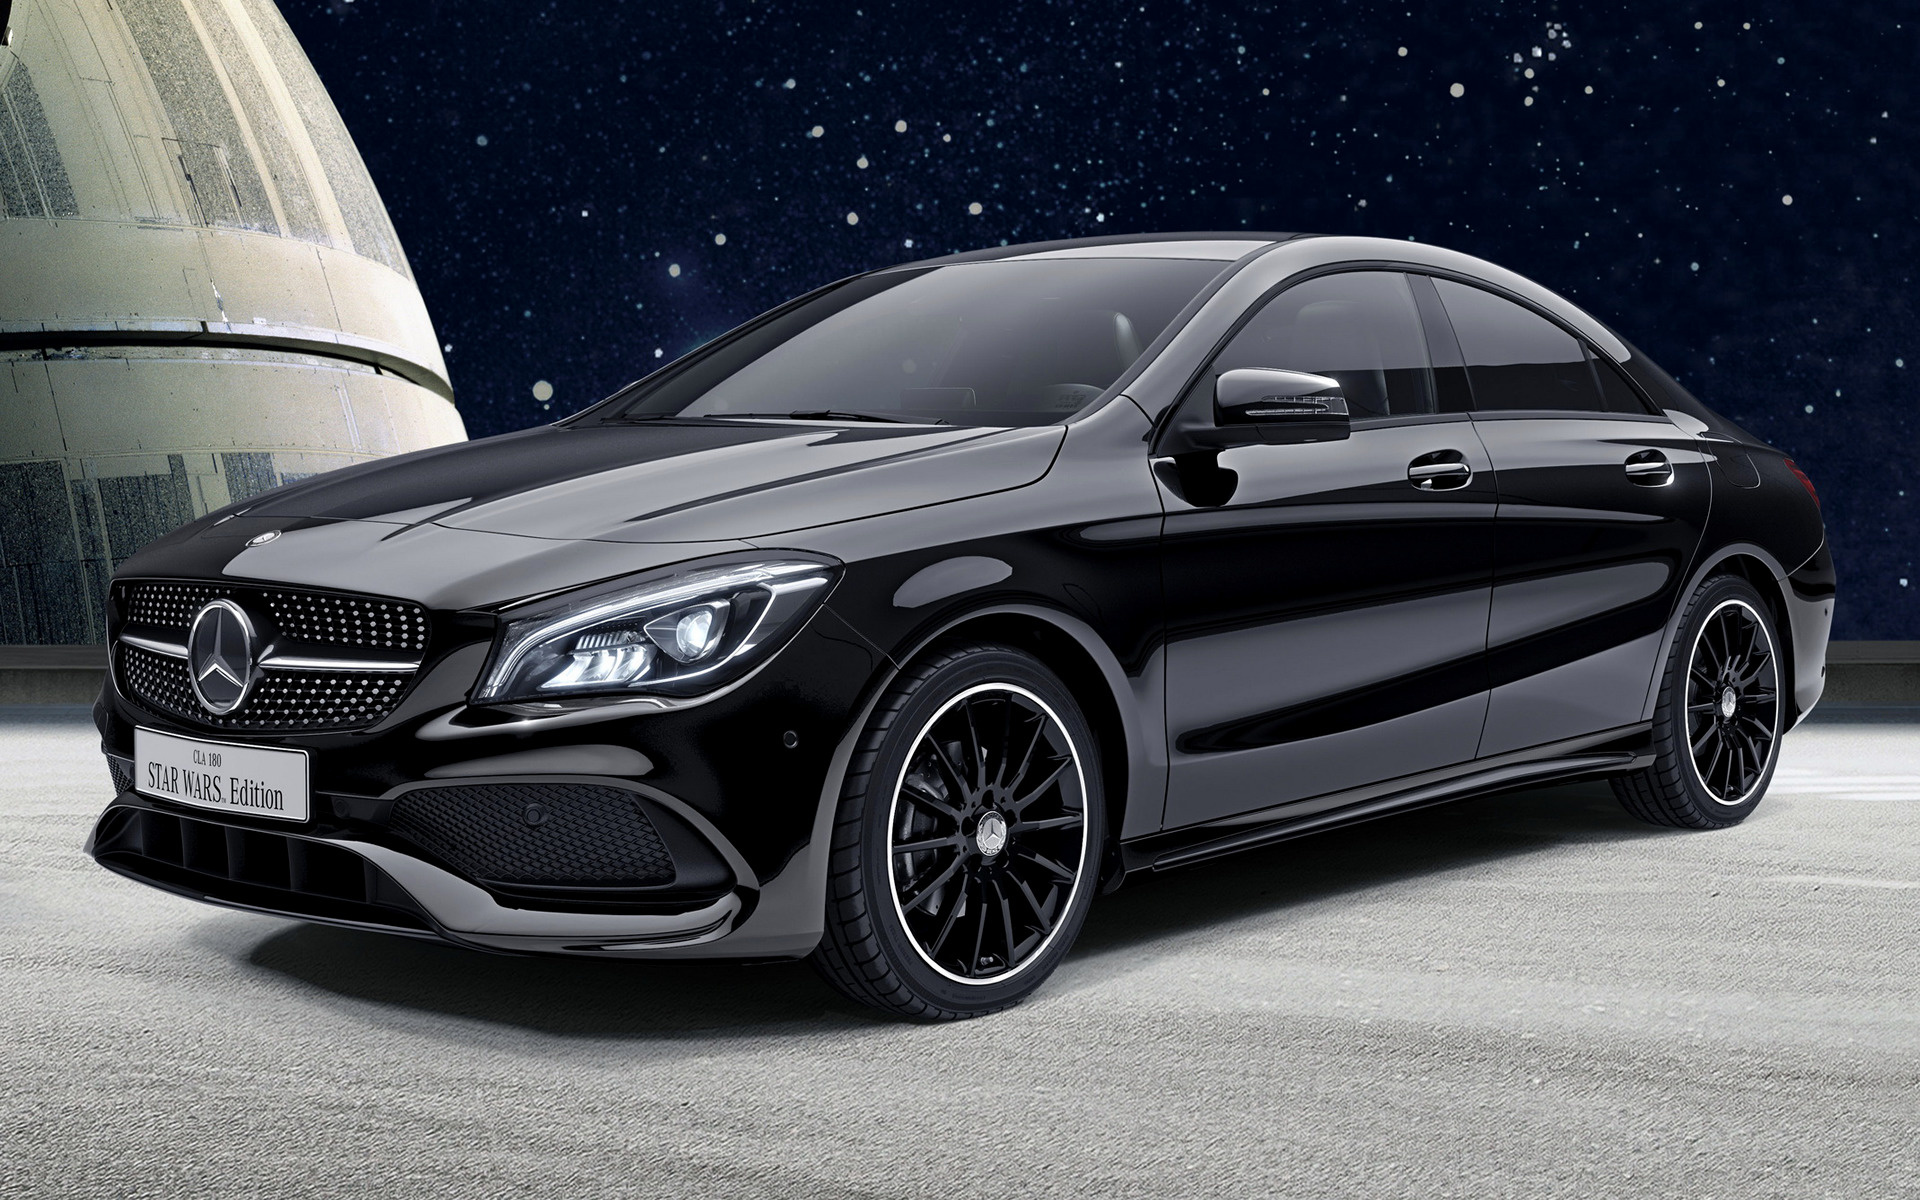 2016 Land Rover >> 2017 Mercedes-Benz CLA-Class Star Wars Edition (JP) - Wallpapers and HD Images | Car Pixel